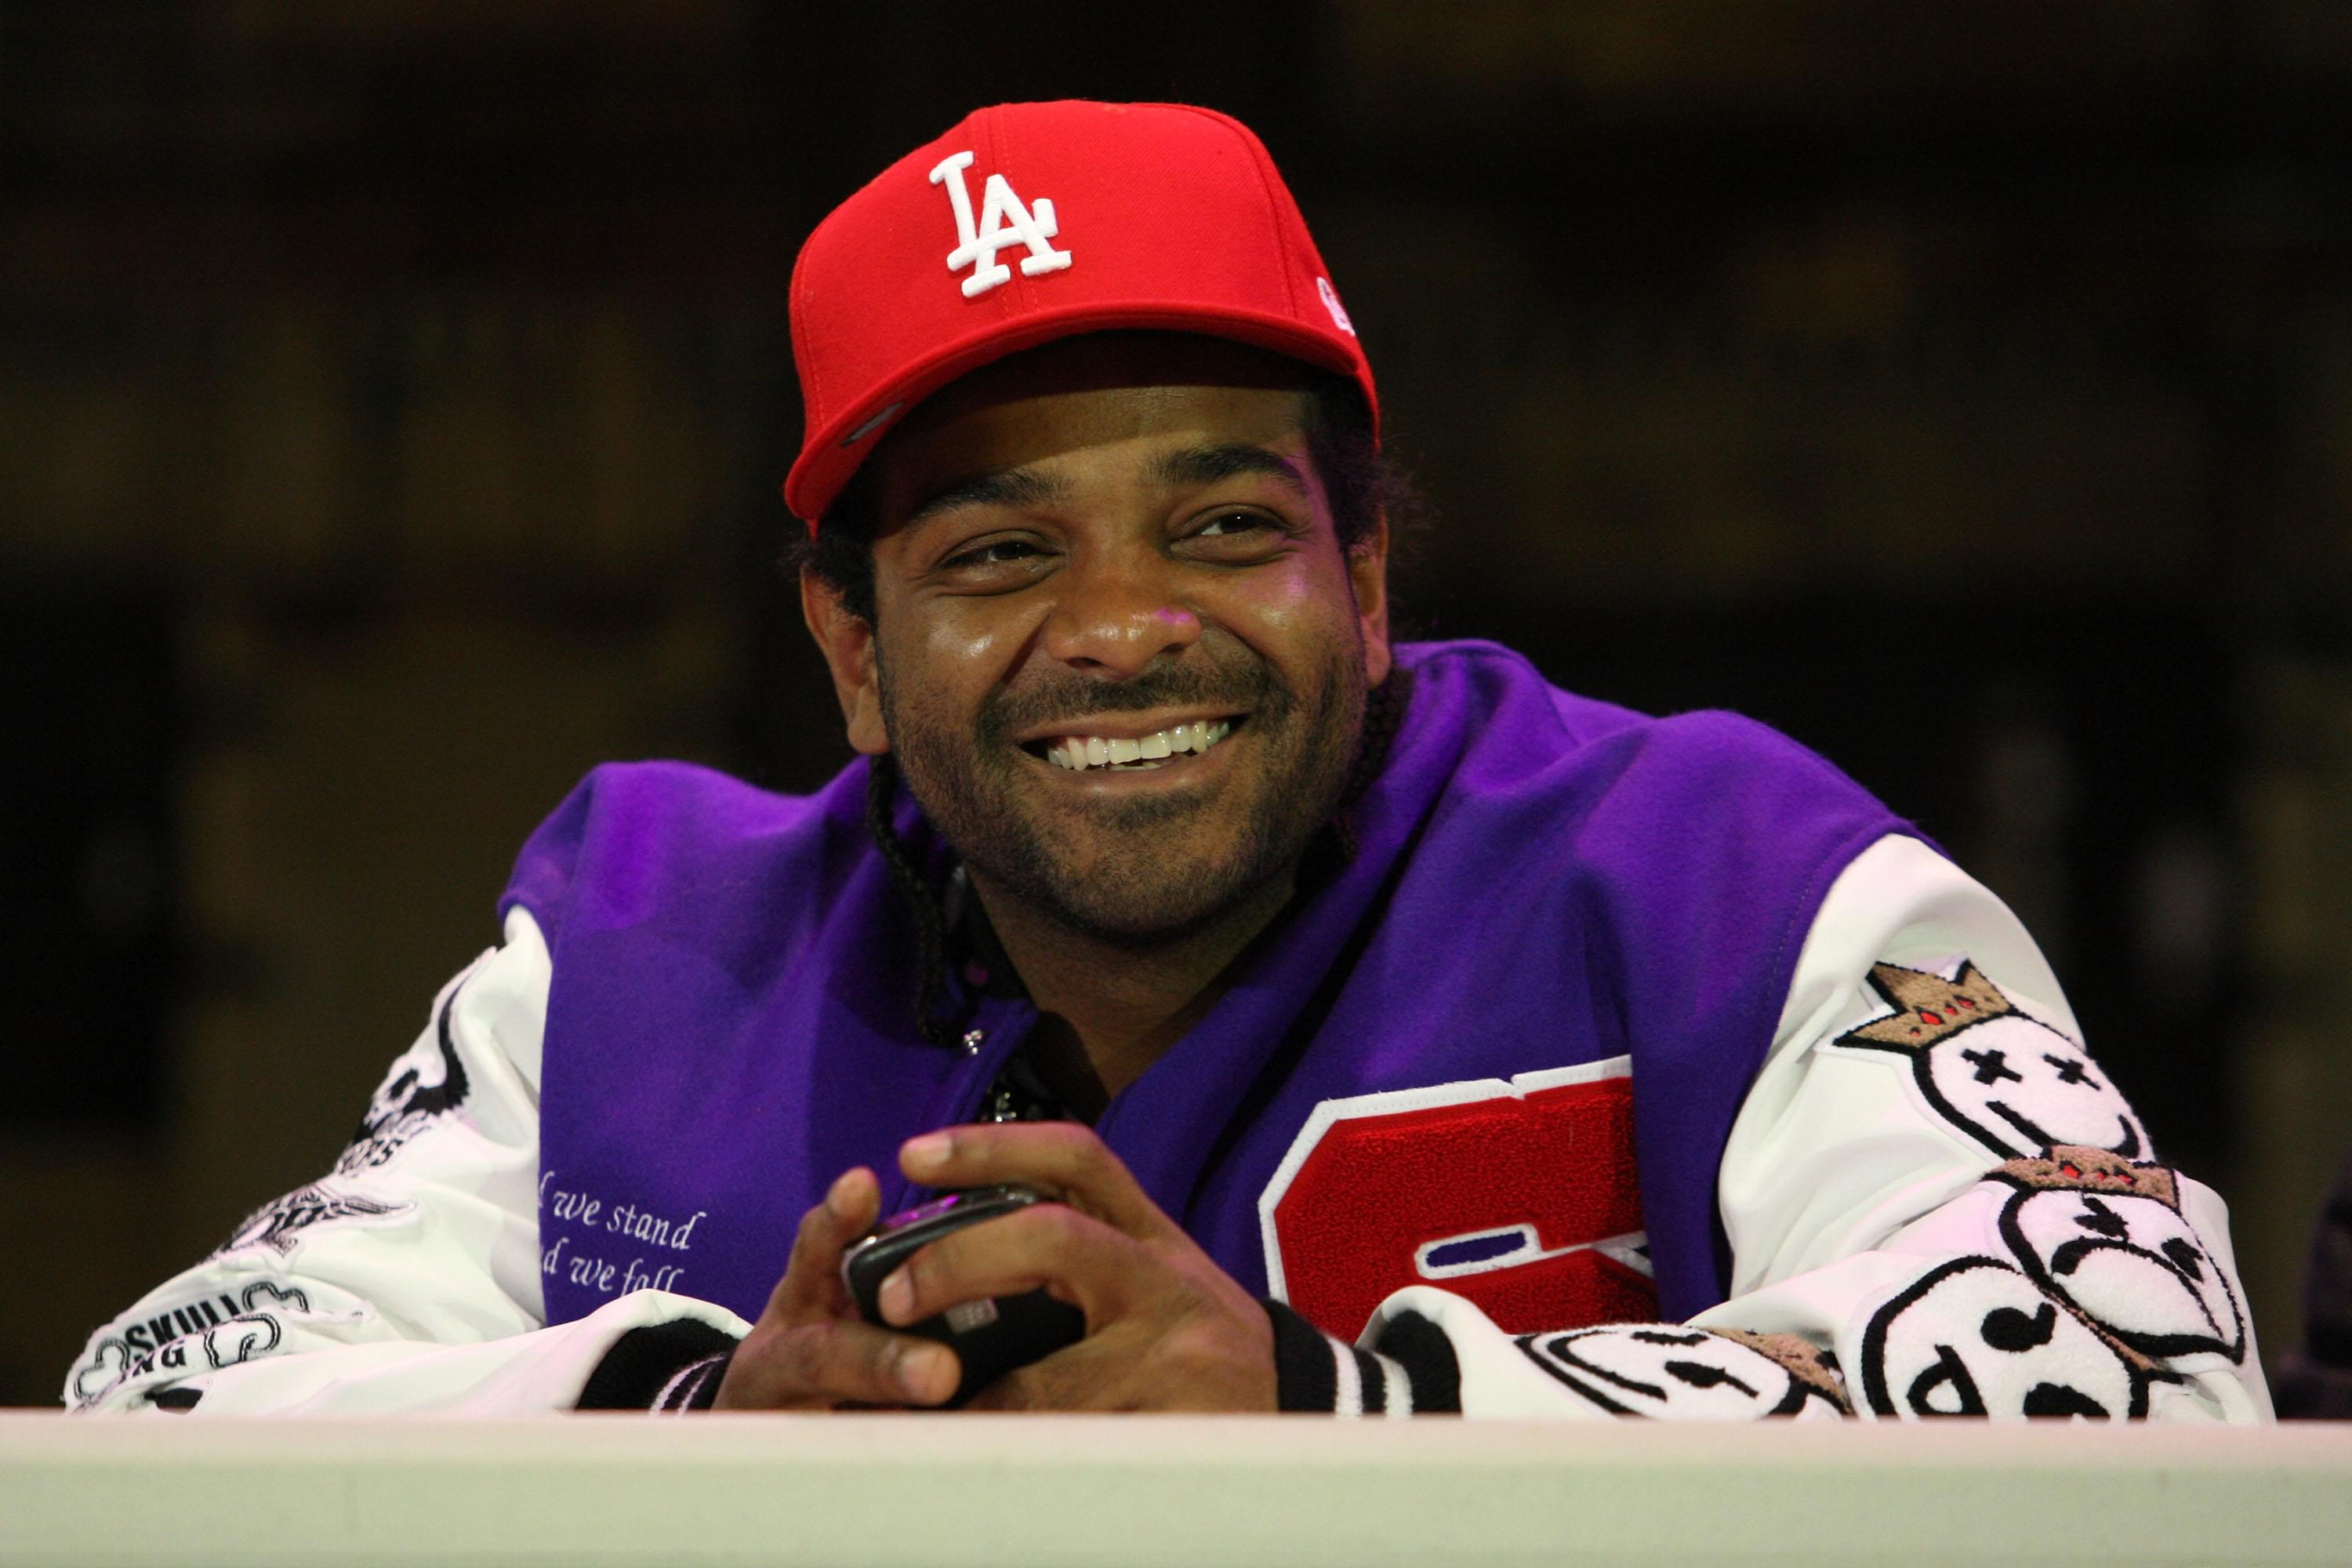 Jim Jones Hit With Five Felony Charges